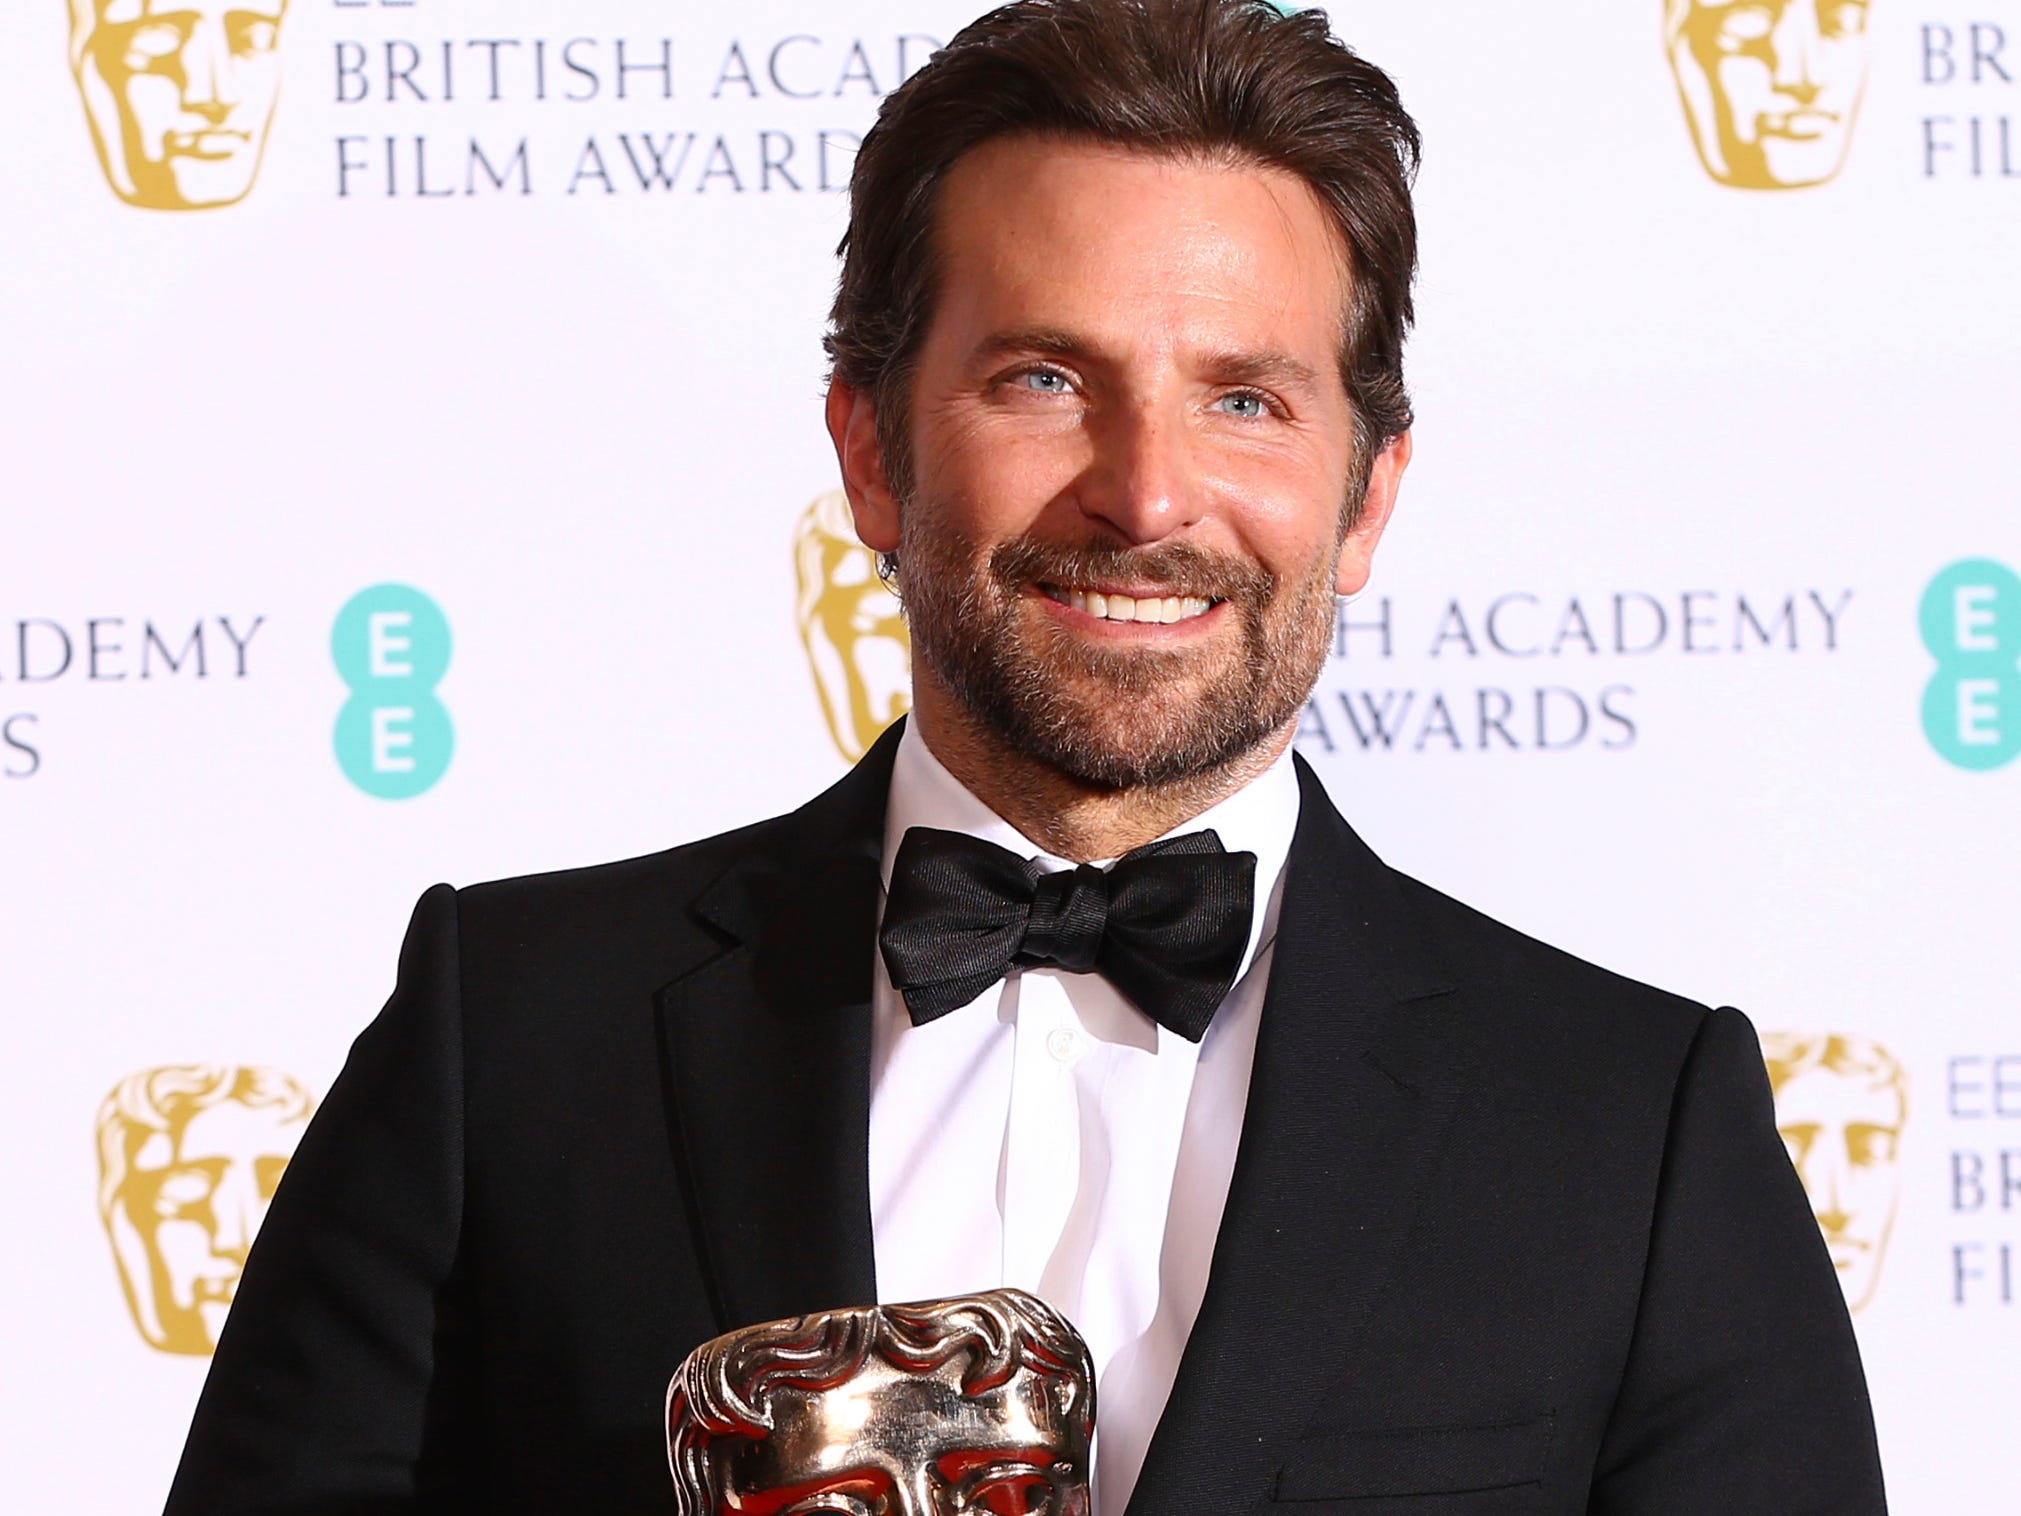 "Hours earlier and an ocean away, Gaga's co-star and director Bradley Cooper accepted the BAFTA equivalent of that award in London. In addition to thanking her, he gave a shout-out to girlfriend Irina Shayk for putting up with him while he ""tried to make music in the basement for a year."""